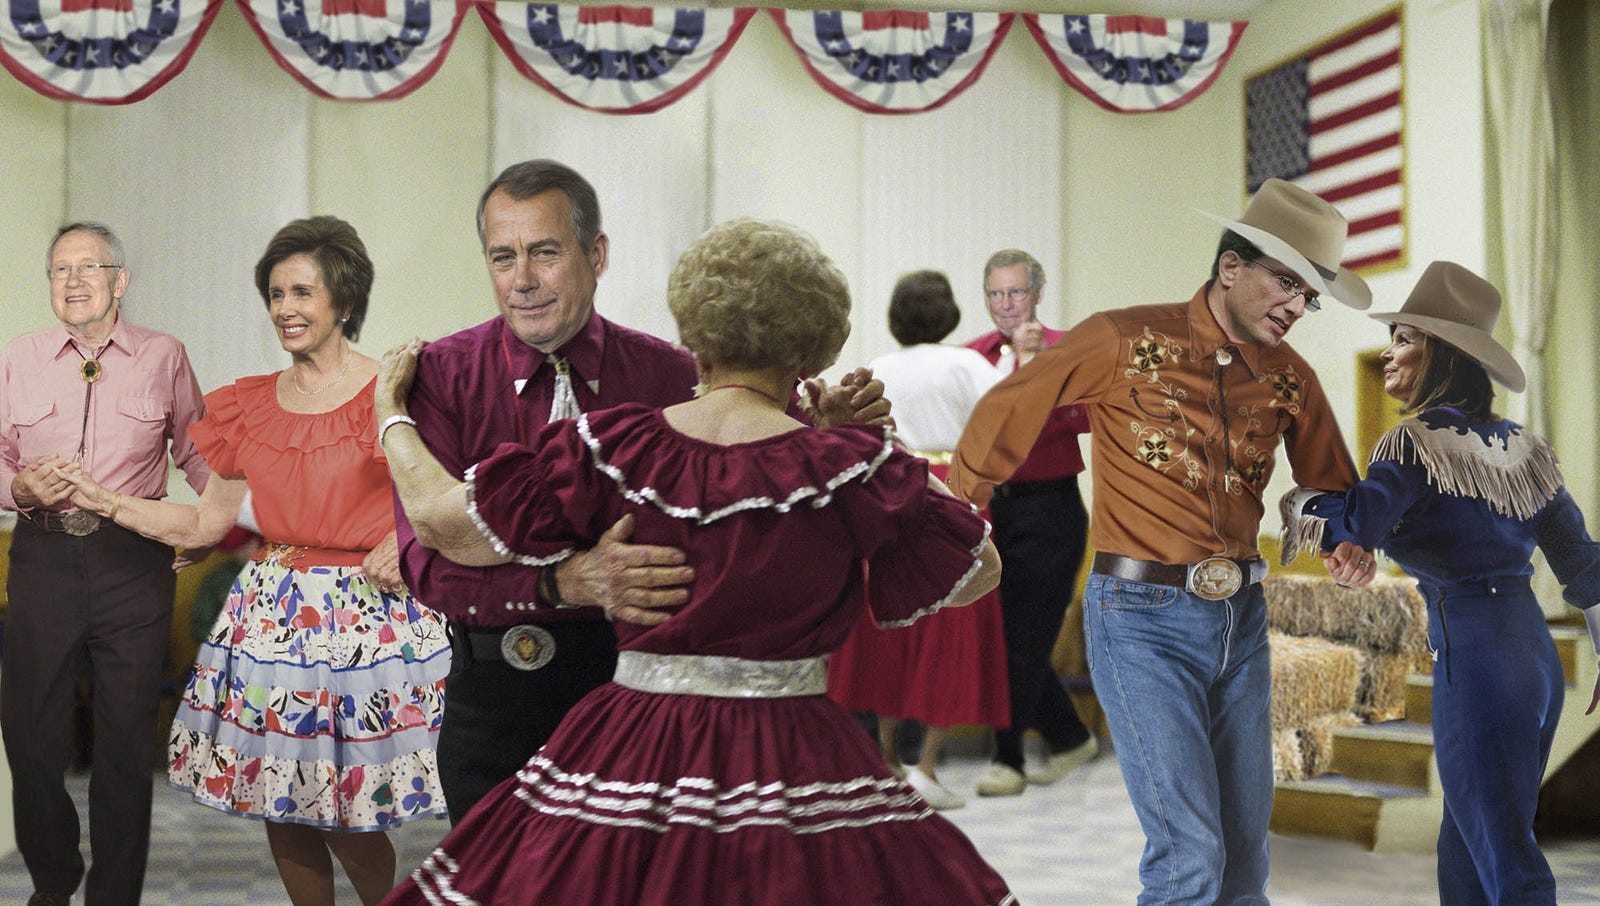 U.S. On Verge Of Full-Scale Government Hoedown